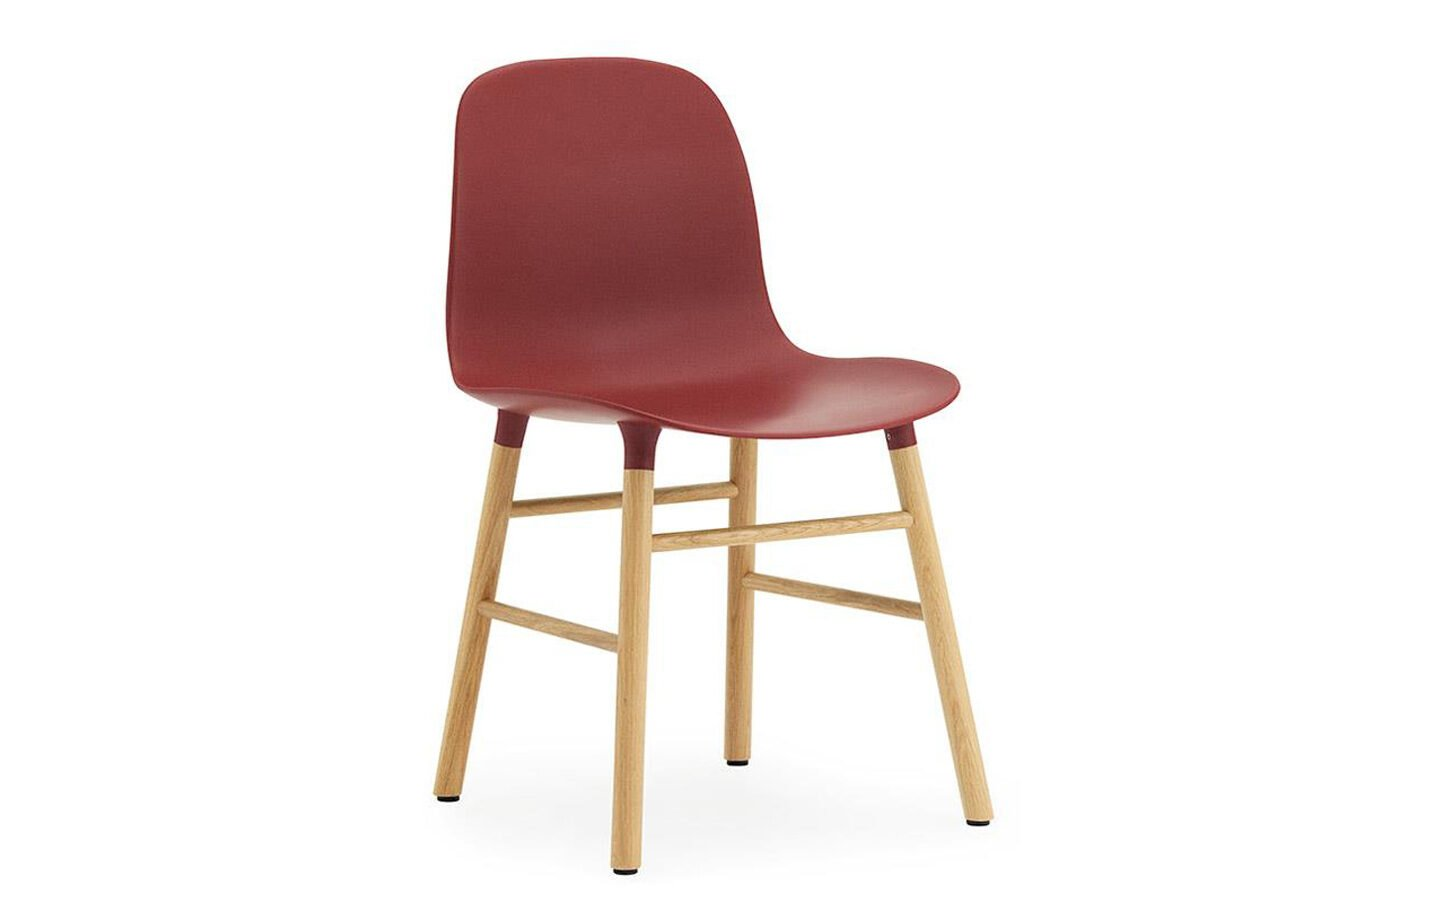 Form-chair-oak-Red-by-Normann